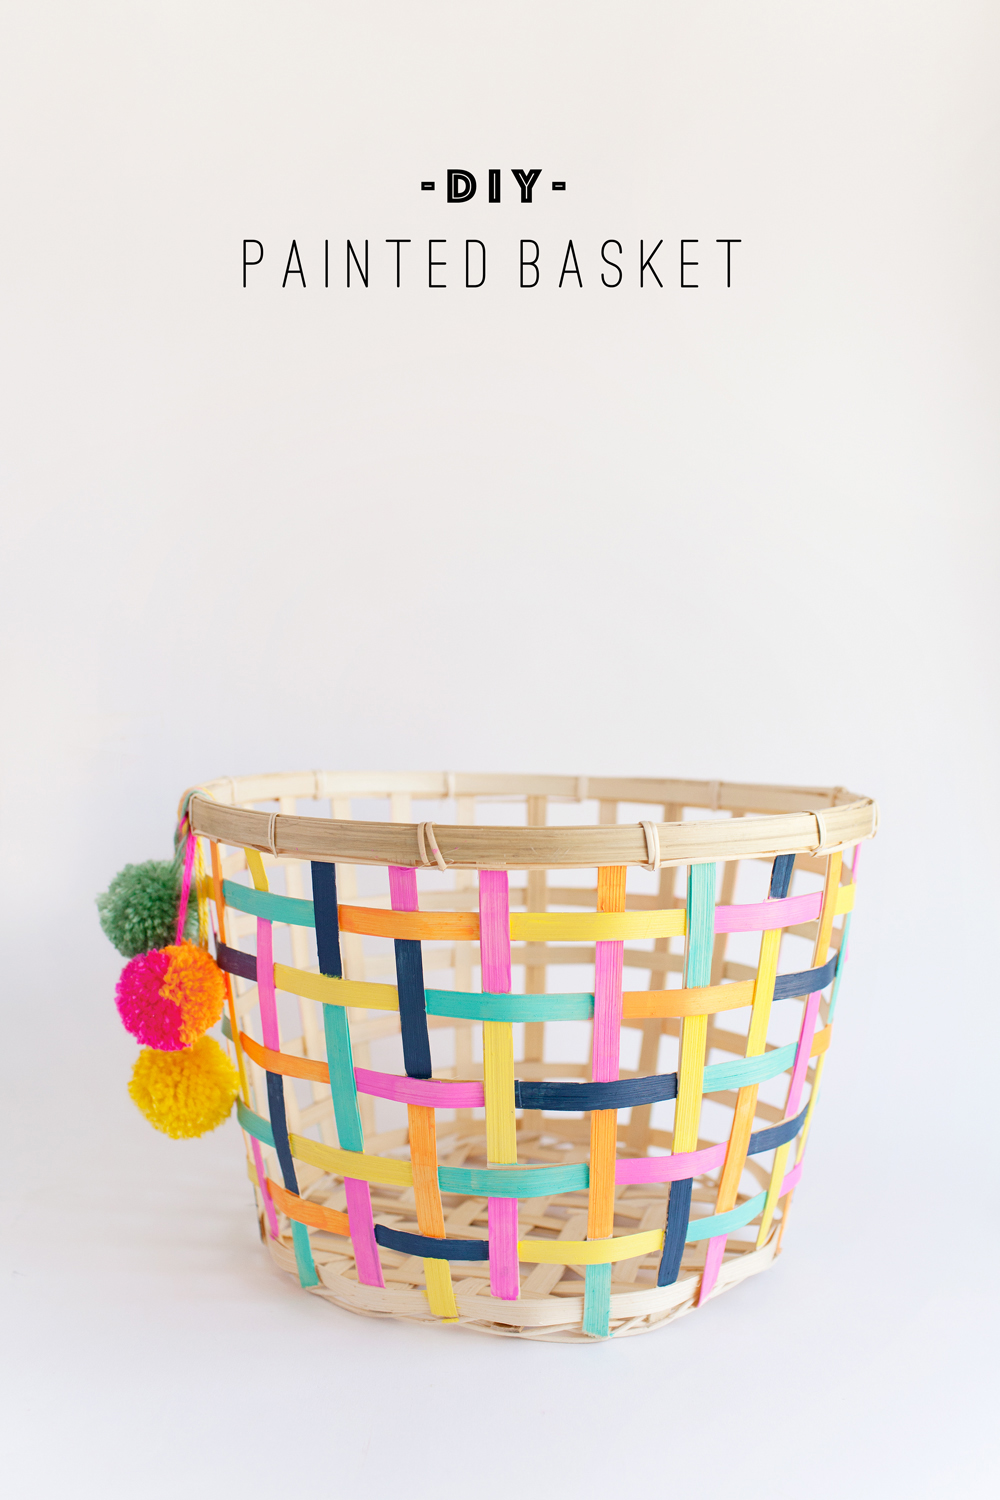 DIY painted storage basket